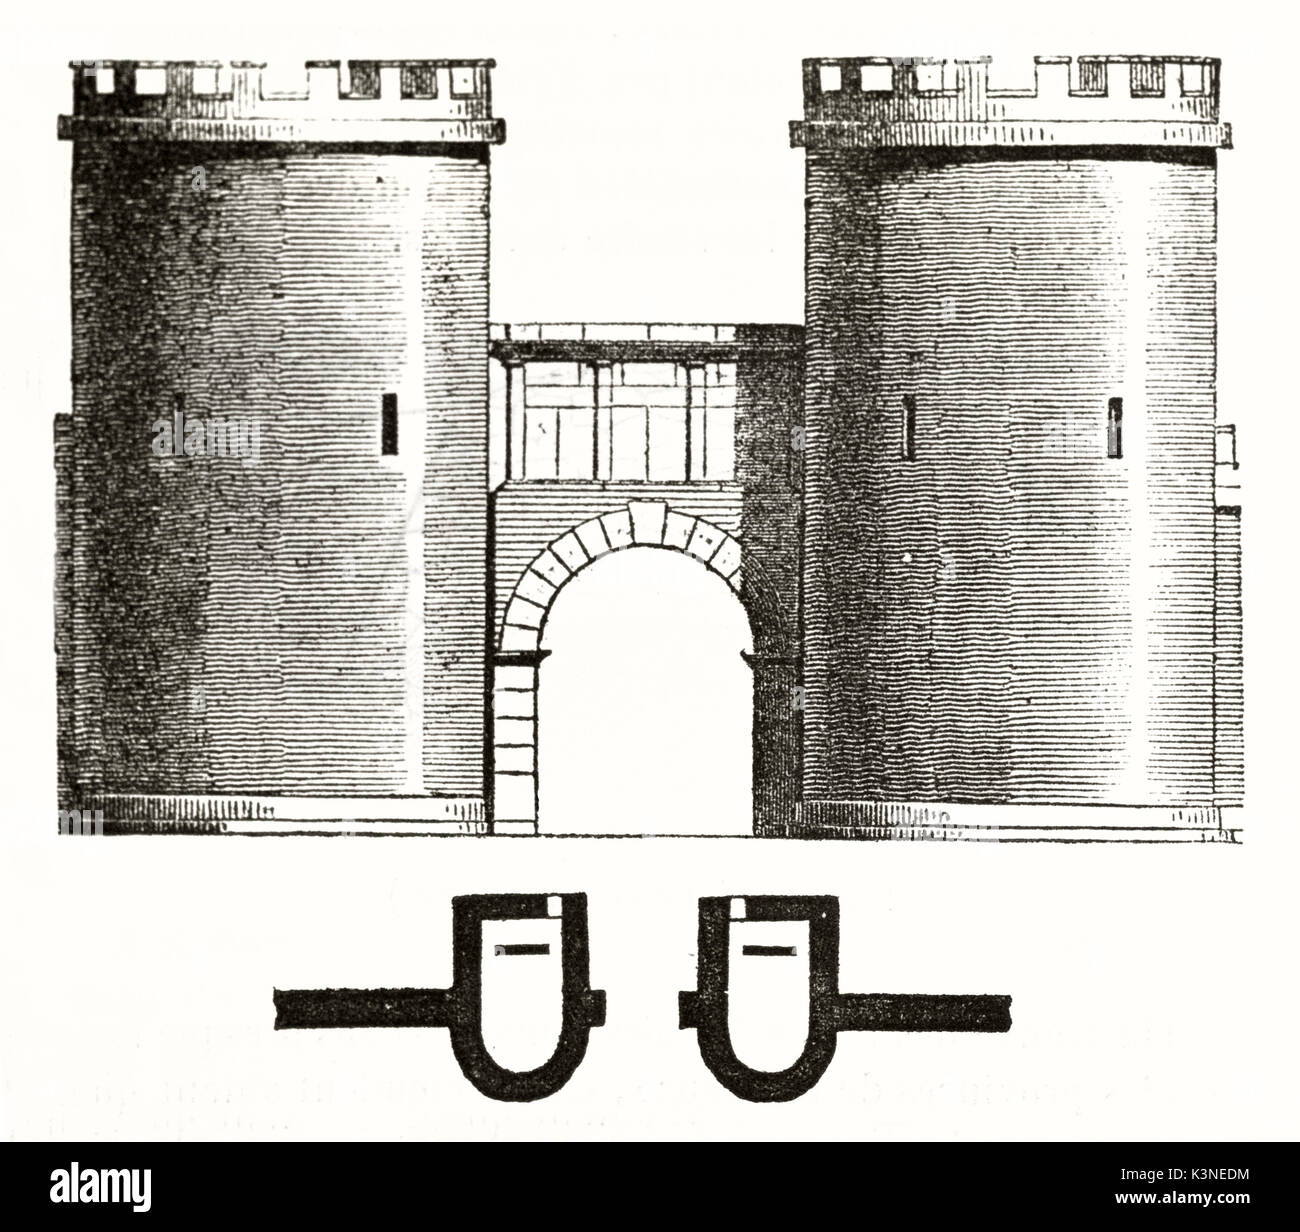 Ancient front view of the Porte de France (France gate) Nimes France, displayed in a old architectonic illustration. By unidentified author published on Magasin Pittoresque Paris 1839 - Stock Image